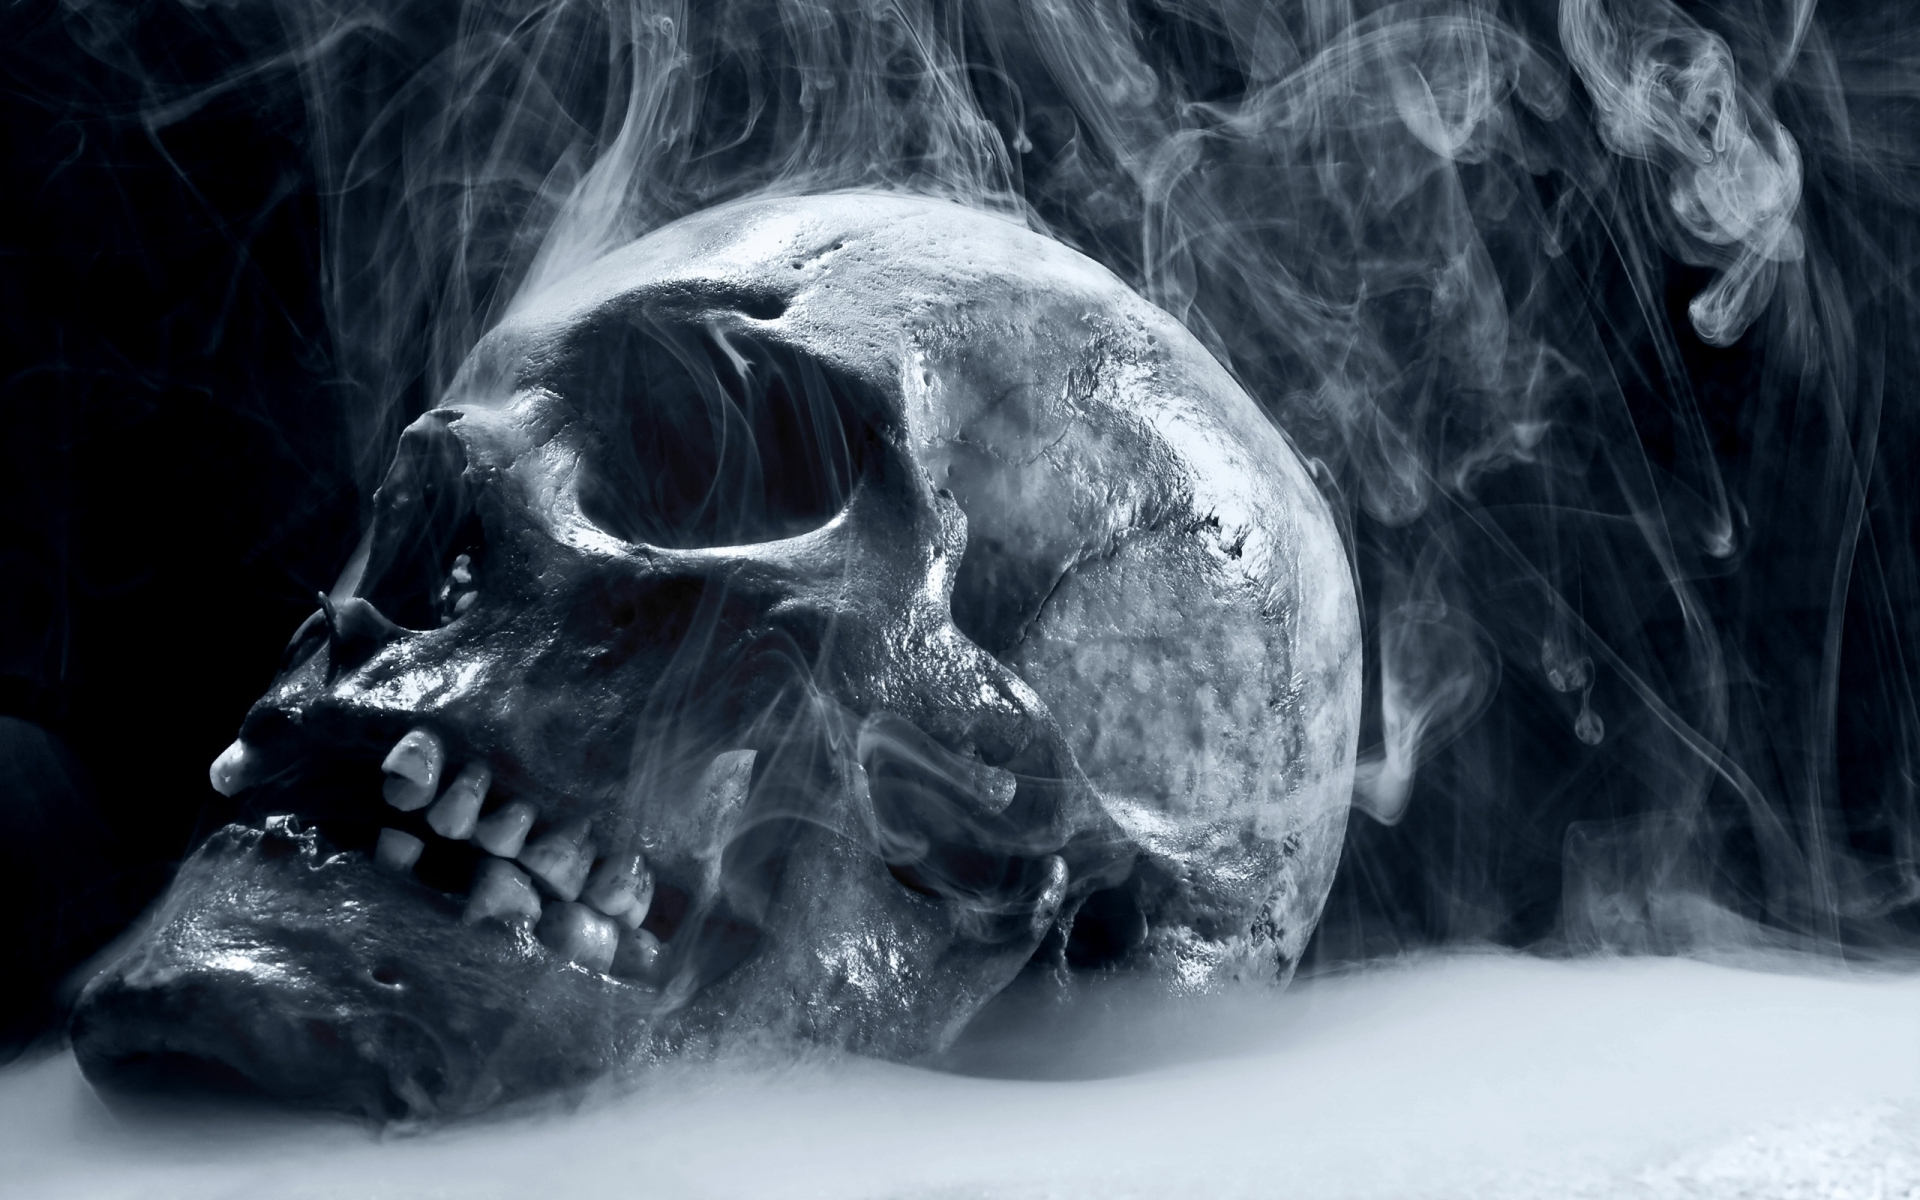 evil skull wallpapers screensaver - photo #2